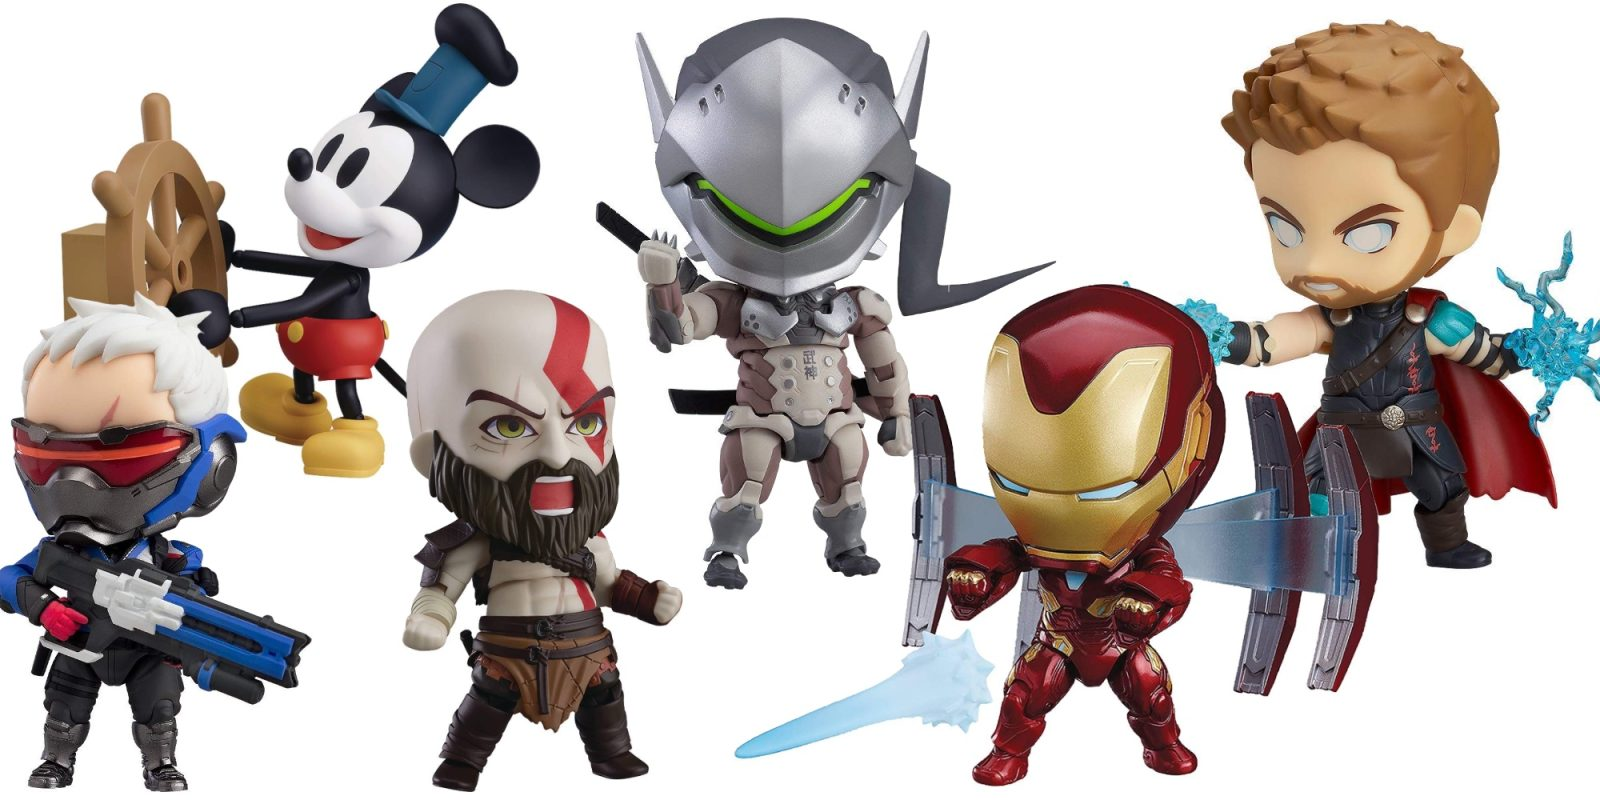 Amazon takes up to 60% off Nendoroid figures: Avengers, Overwatch, more from $20